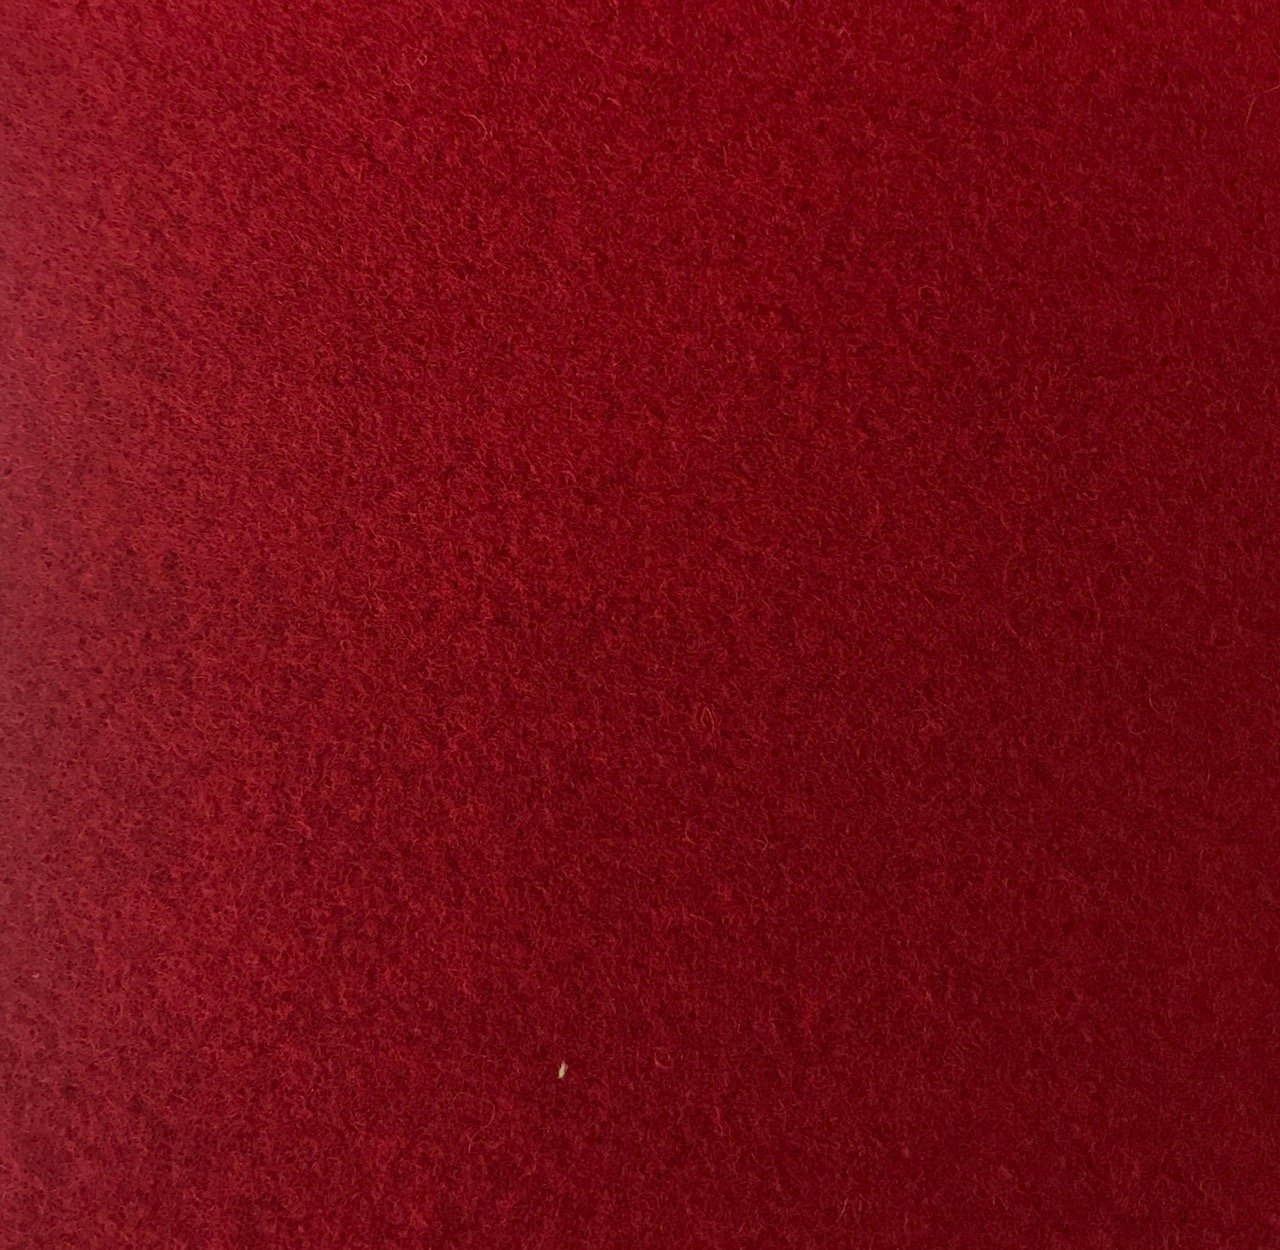 Wool Blend -  Dark Red